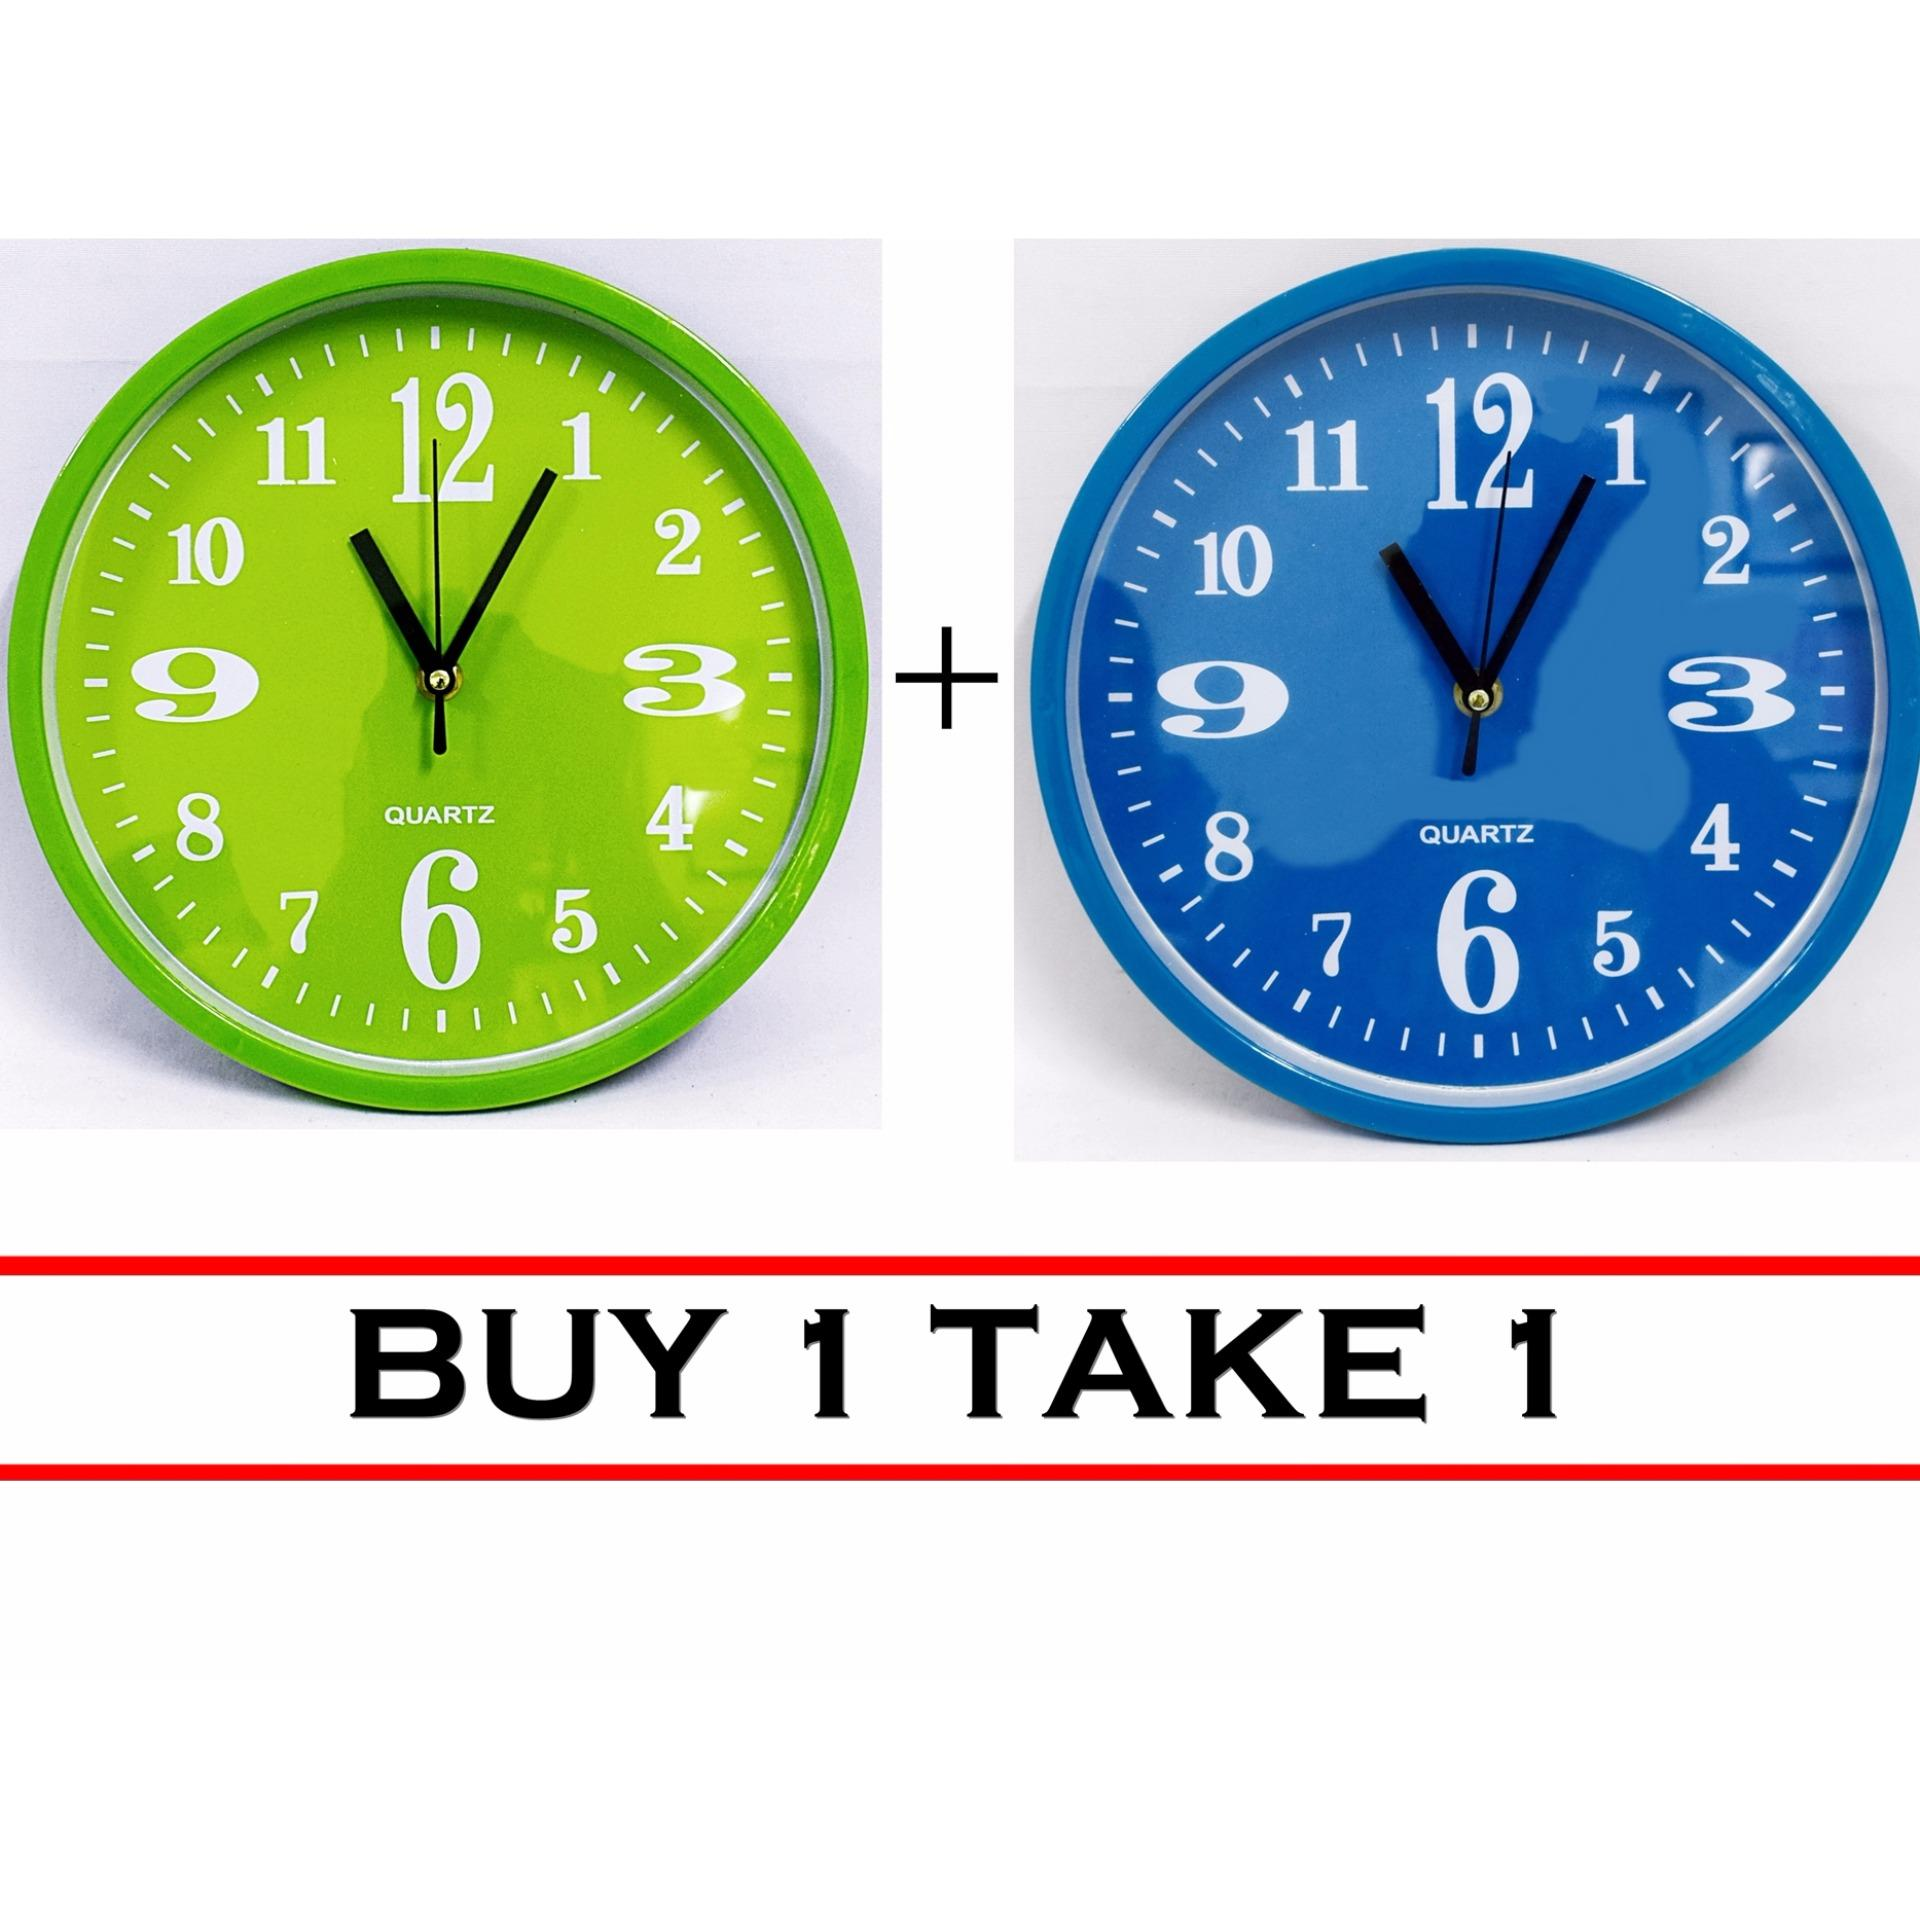 Quartz 561 wall clock buy one take one lazada ph amipublicfo Image collections